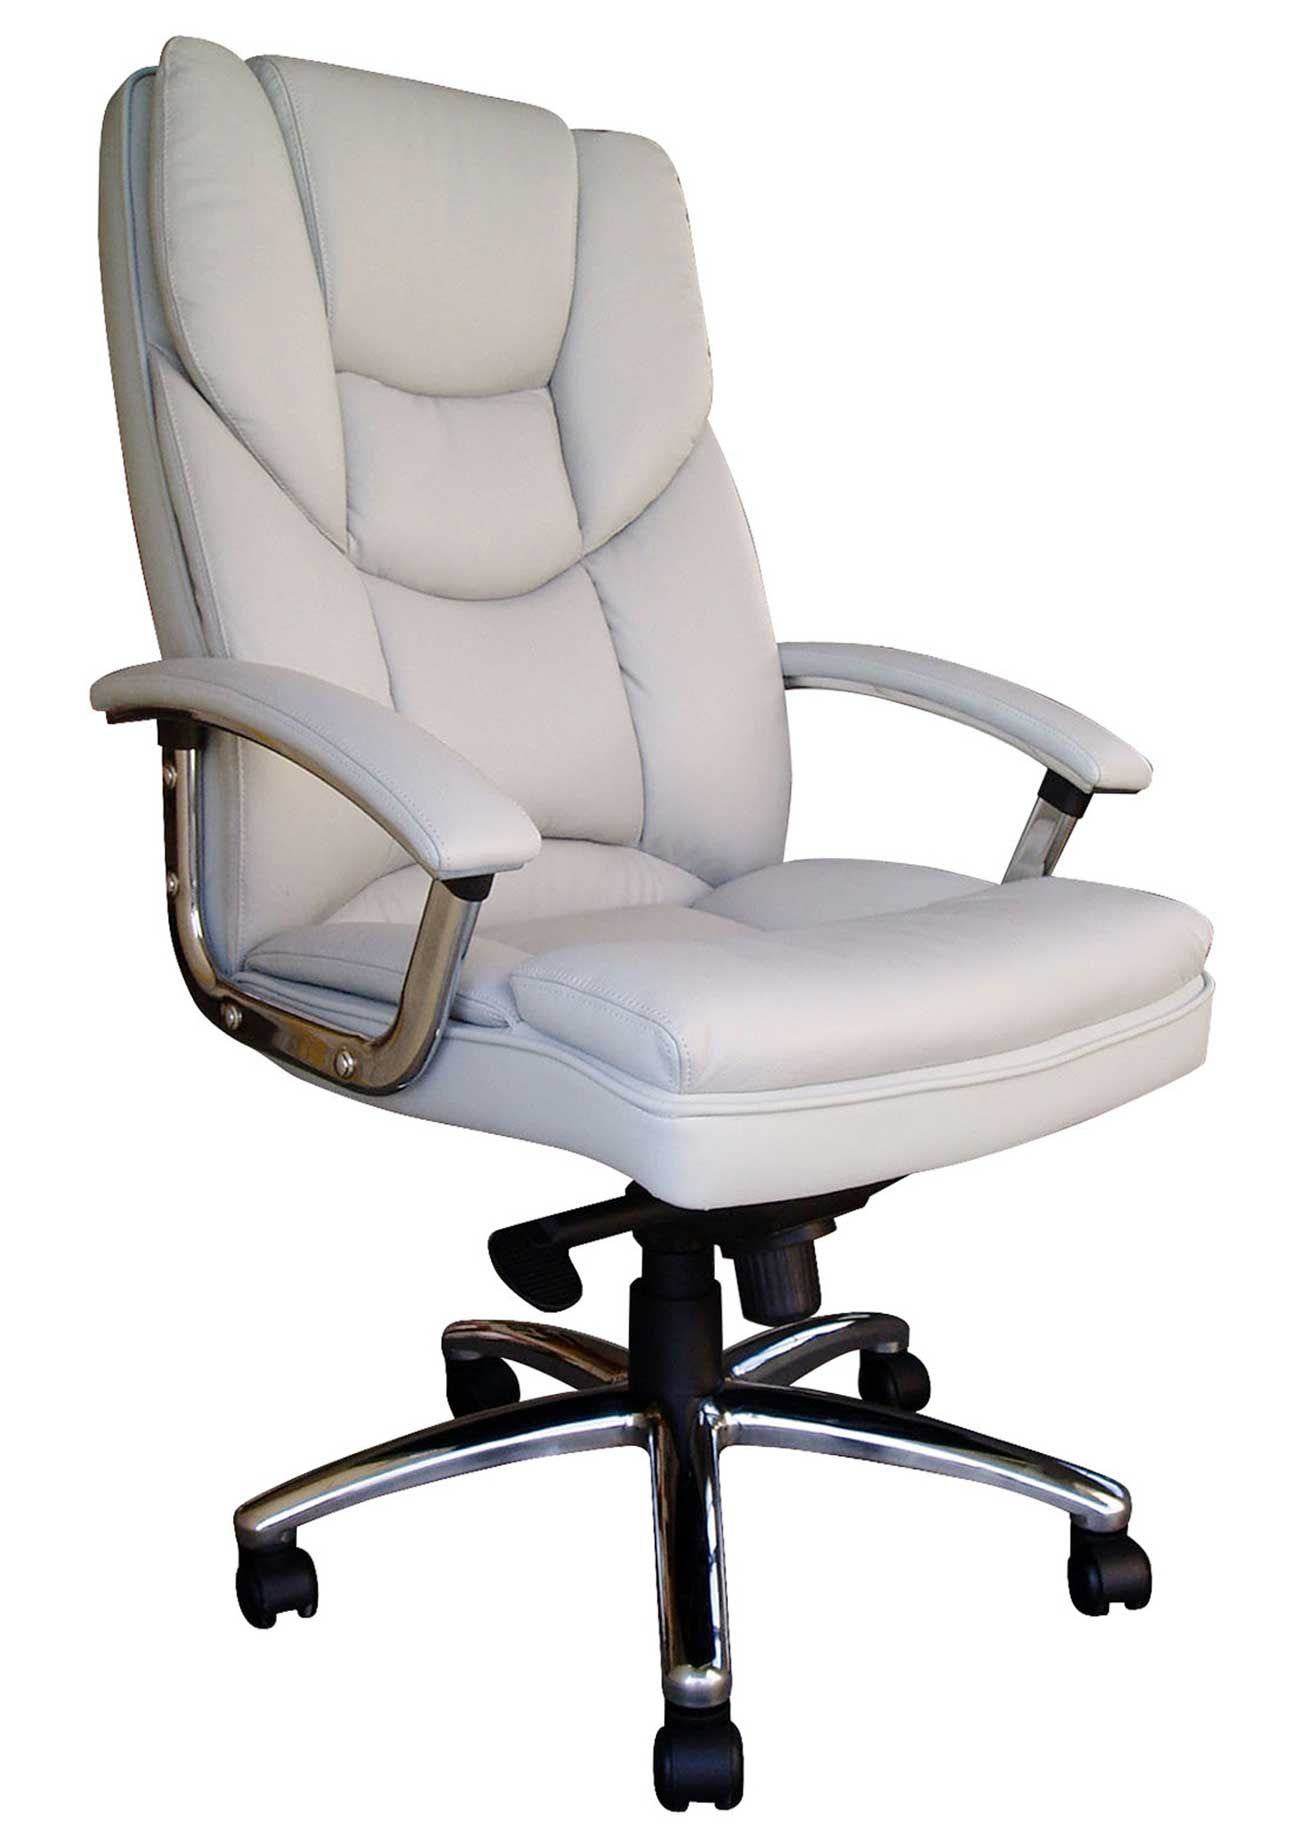 white leather computer chair. Best White Leather Directors Chair Ideas, Gallery, Inspiration, Computer R